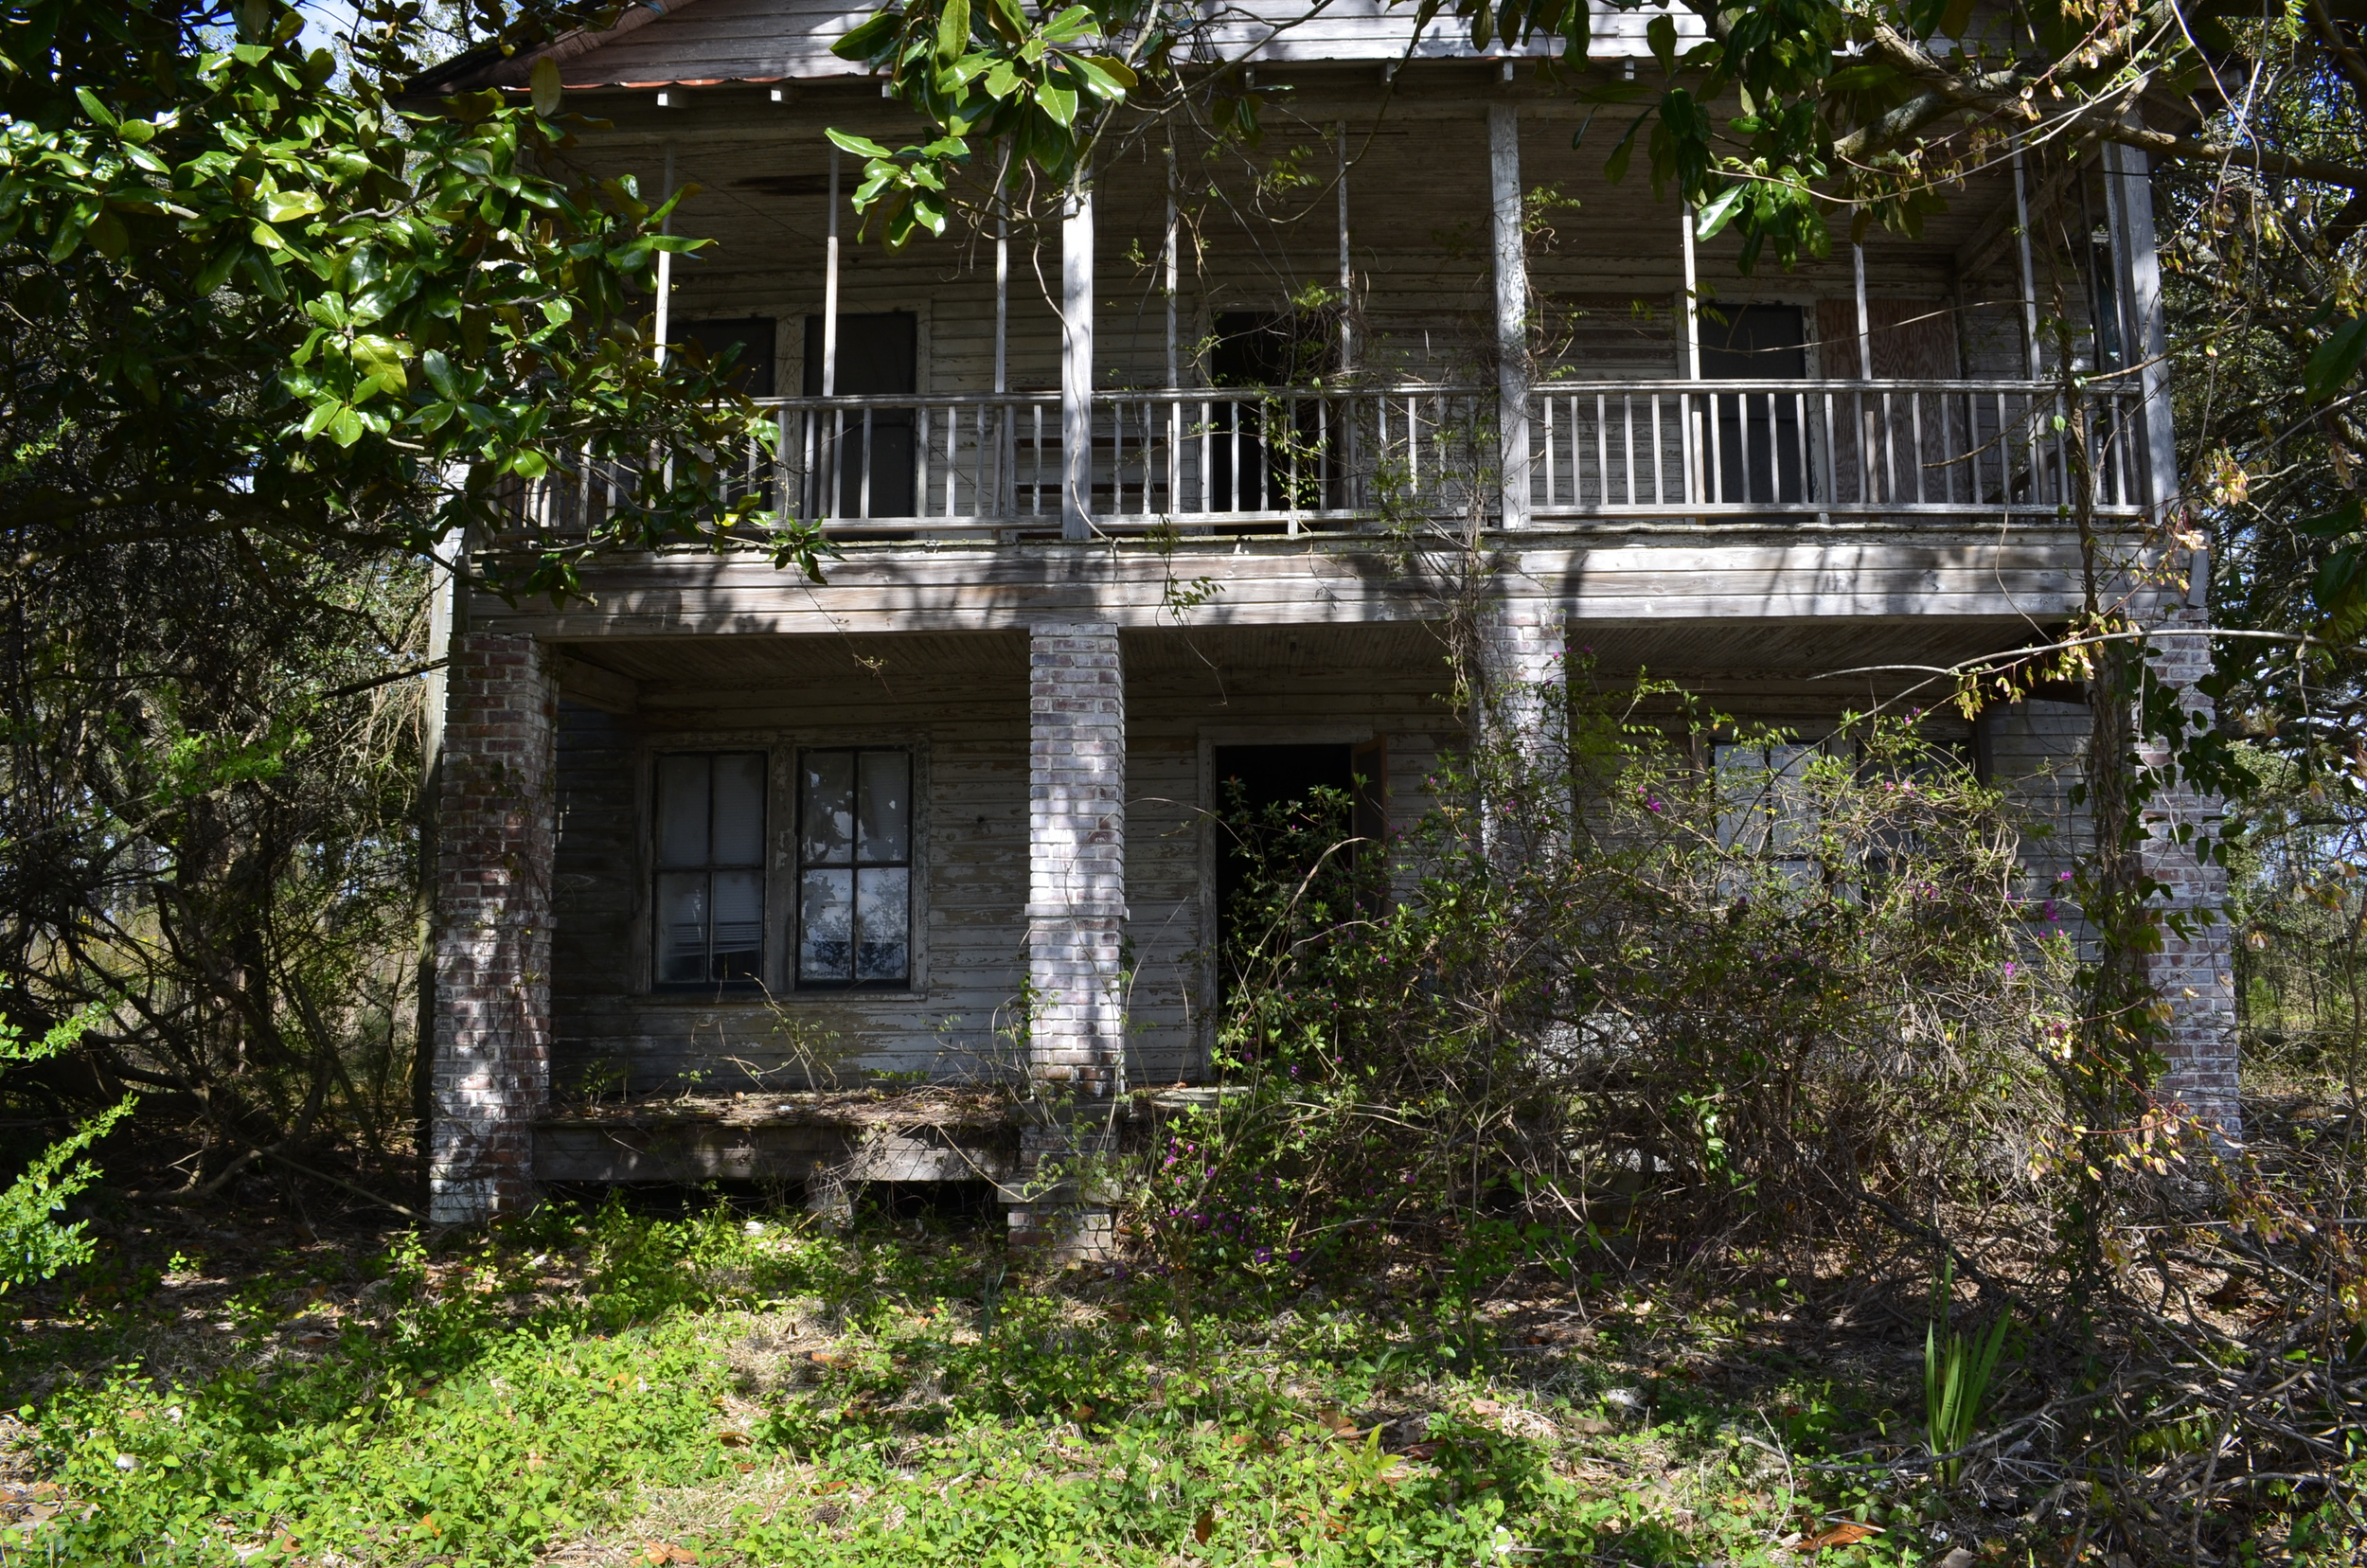 The exterior of the abandoned house. (unedited)